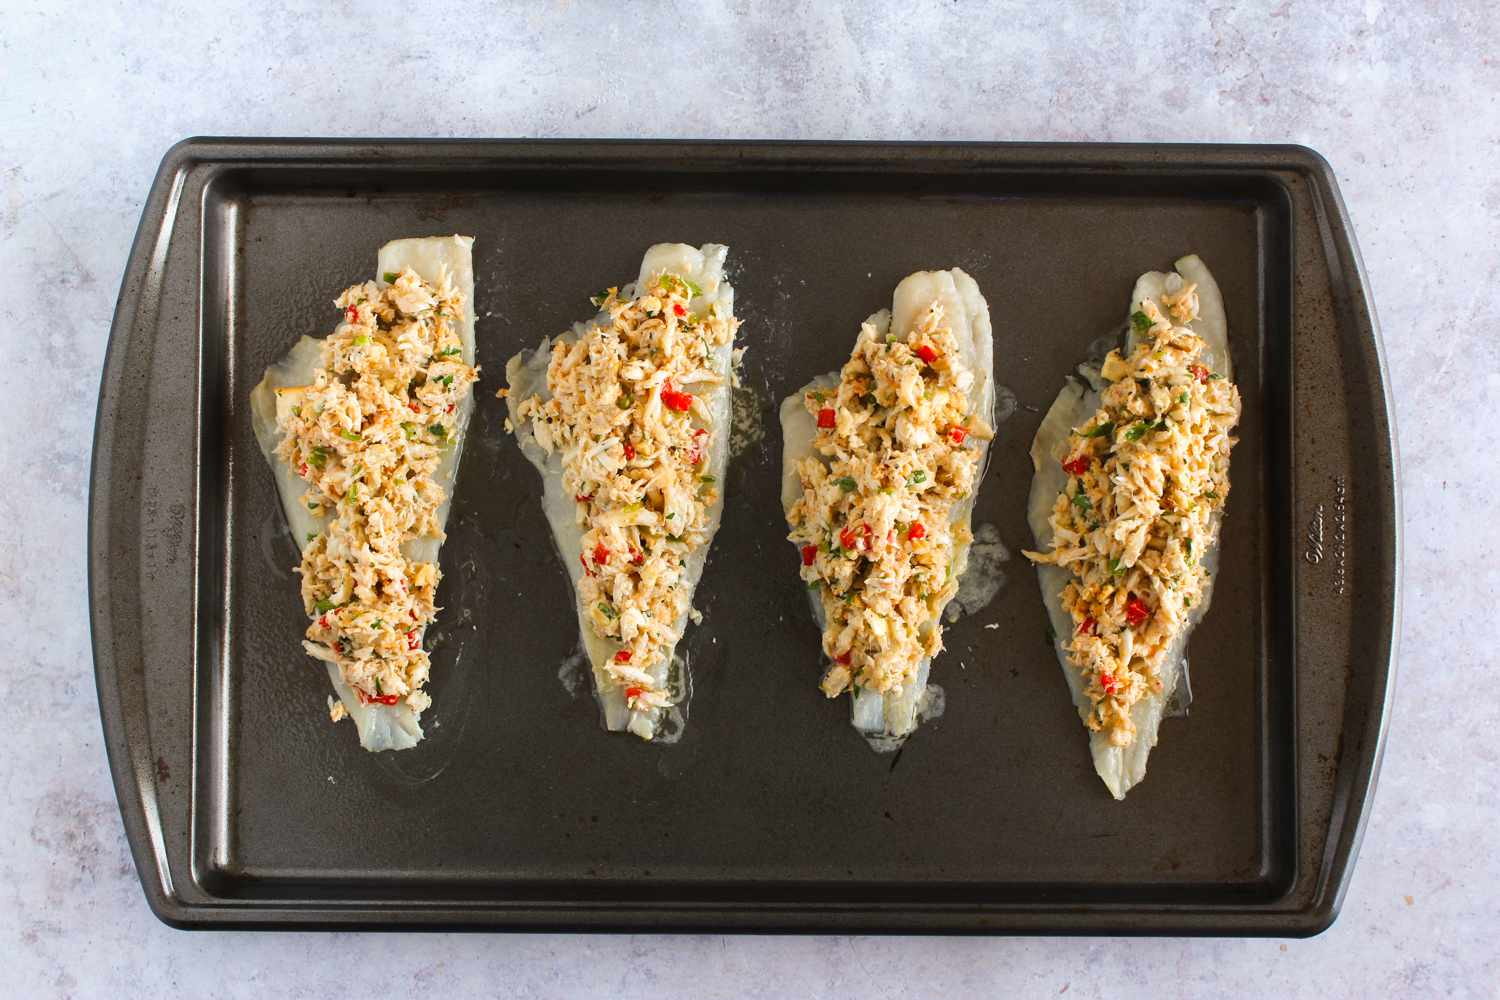 Uncooked stuffed flounder fillets on baking sheet with melted butter